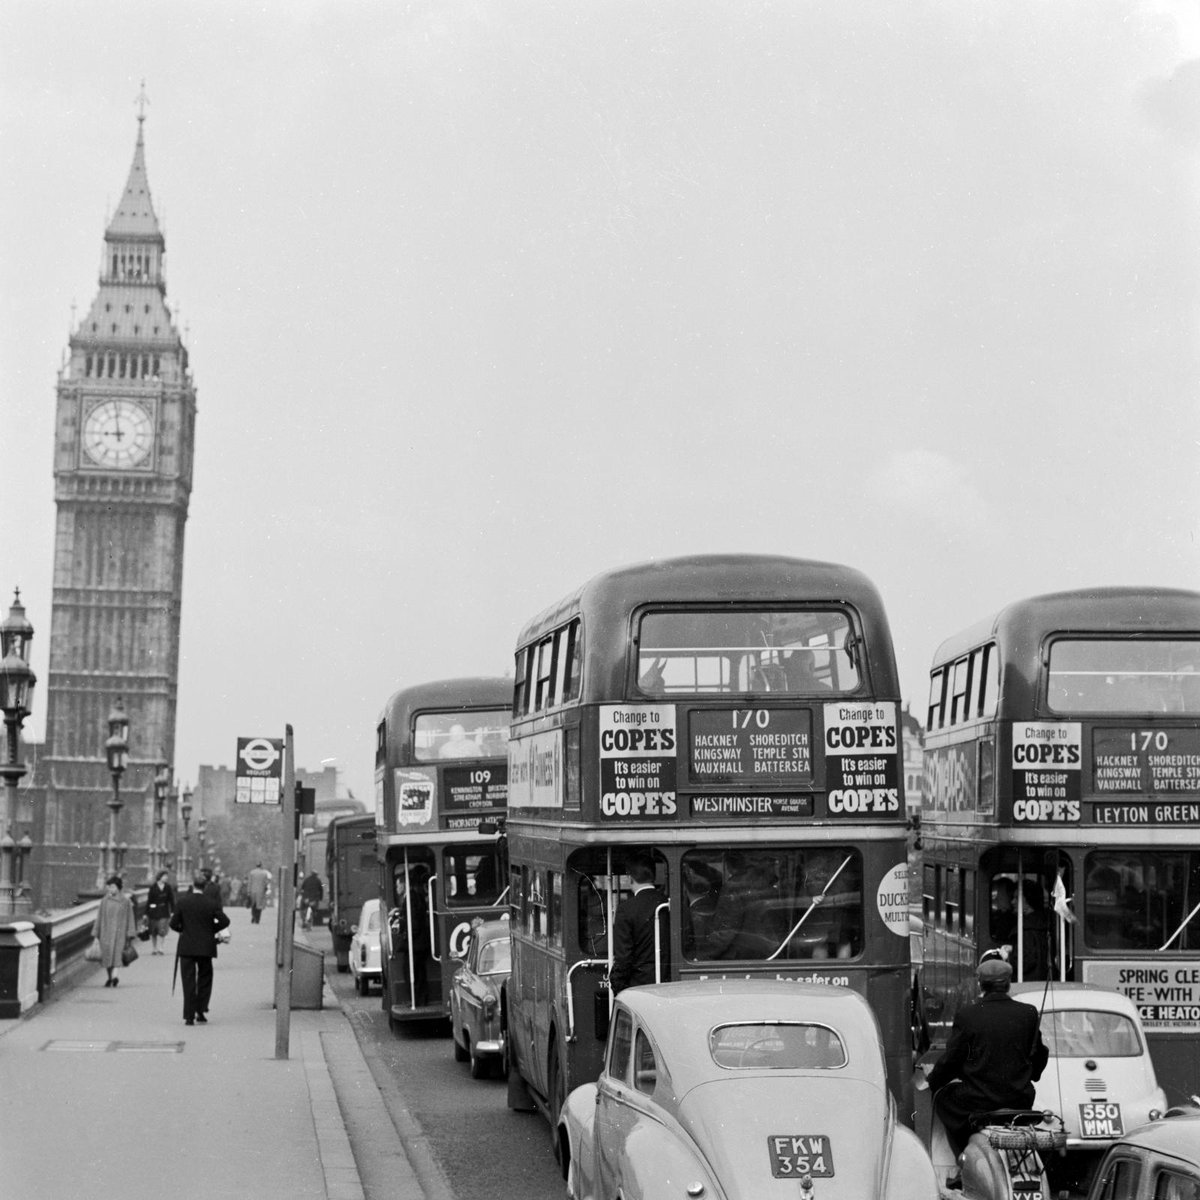 Historic England On Twitter On This Day In 1859 Big Ben First